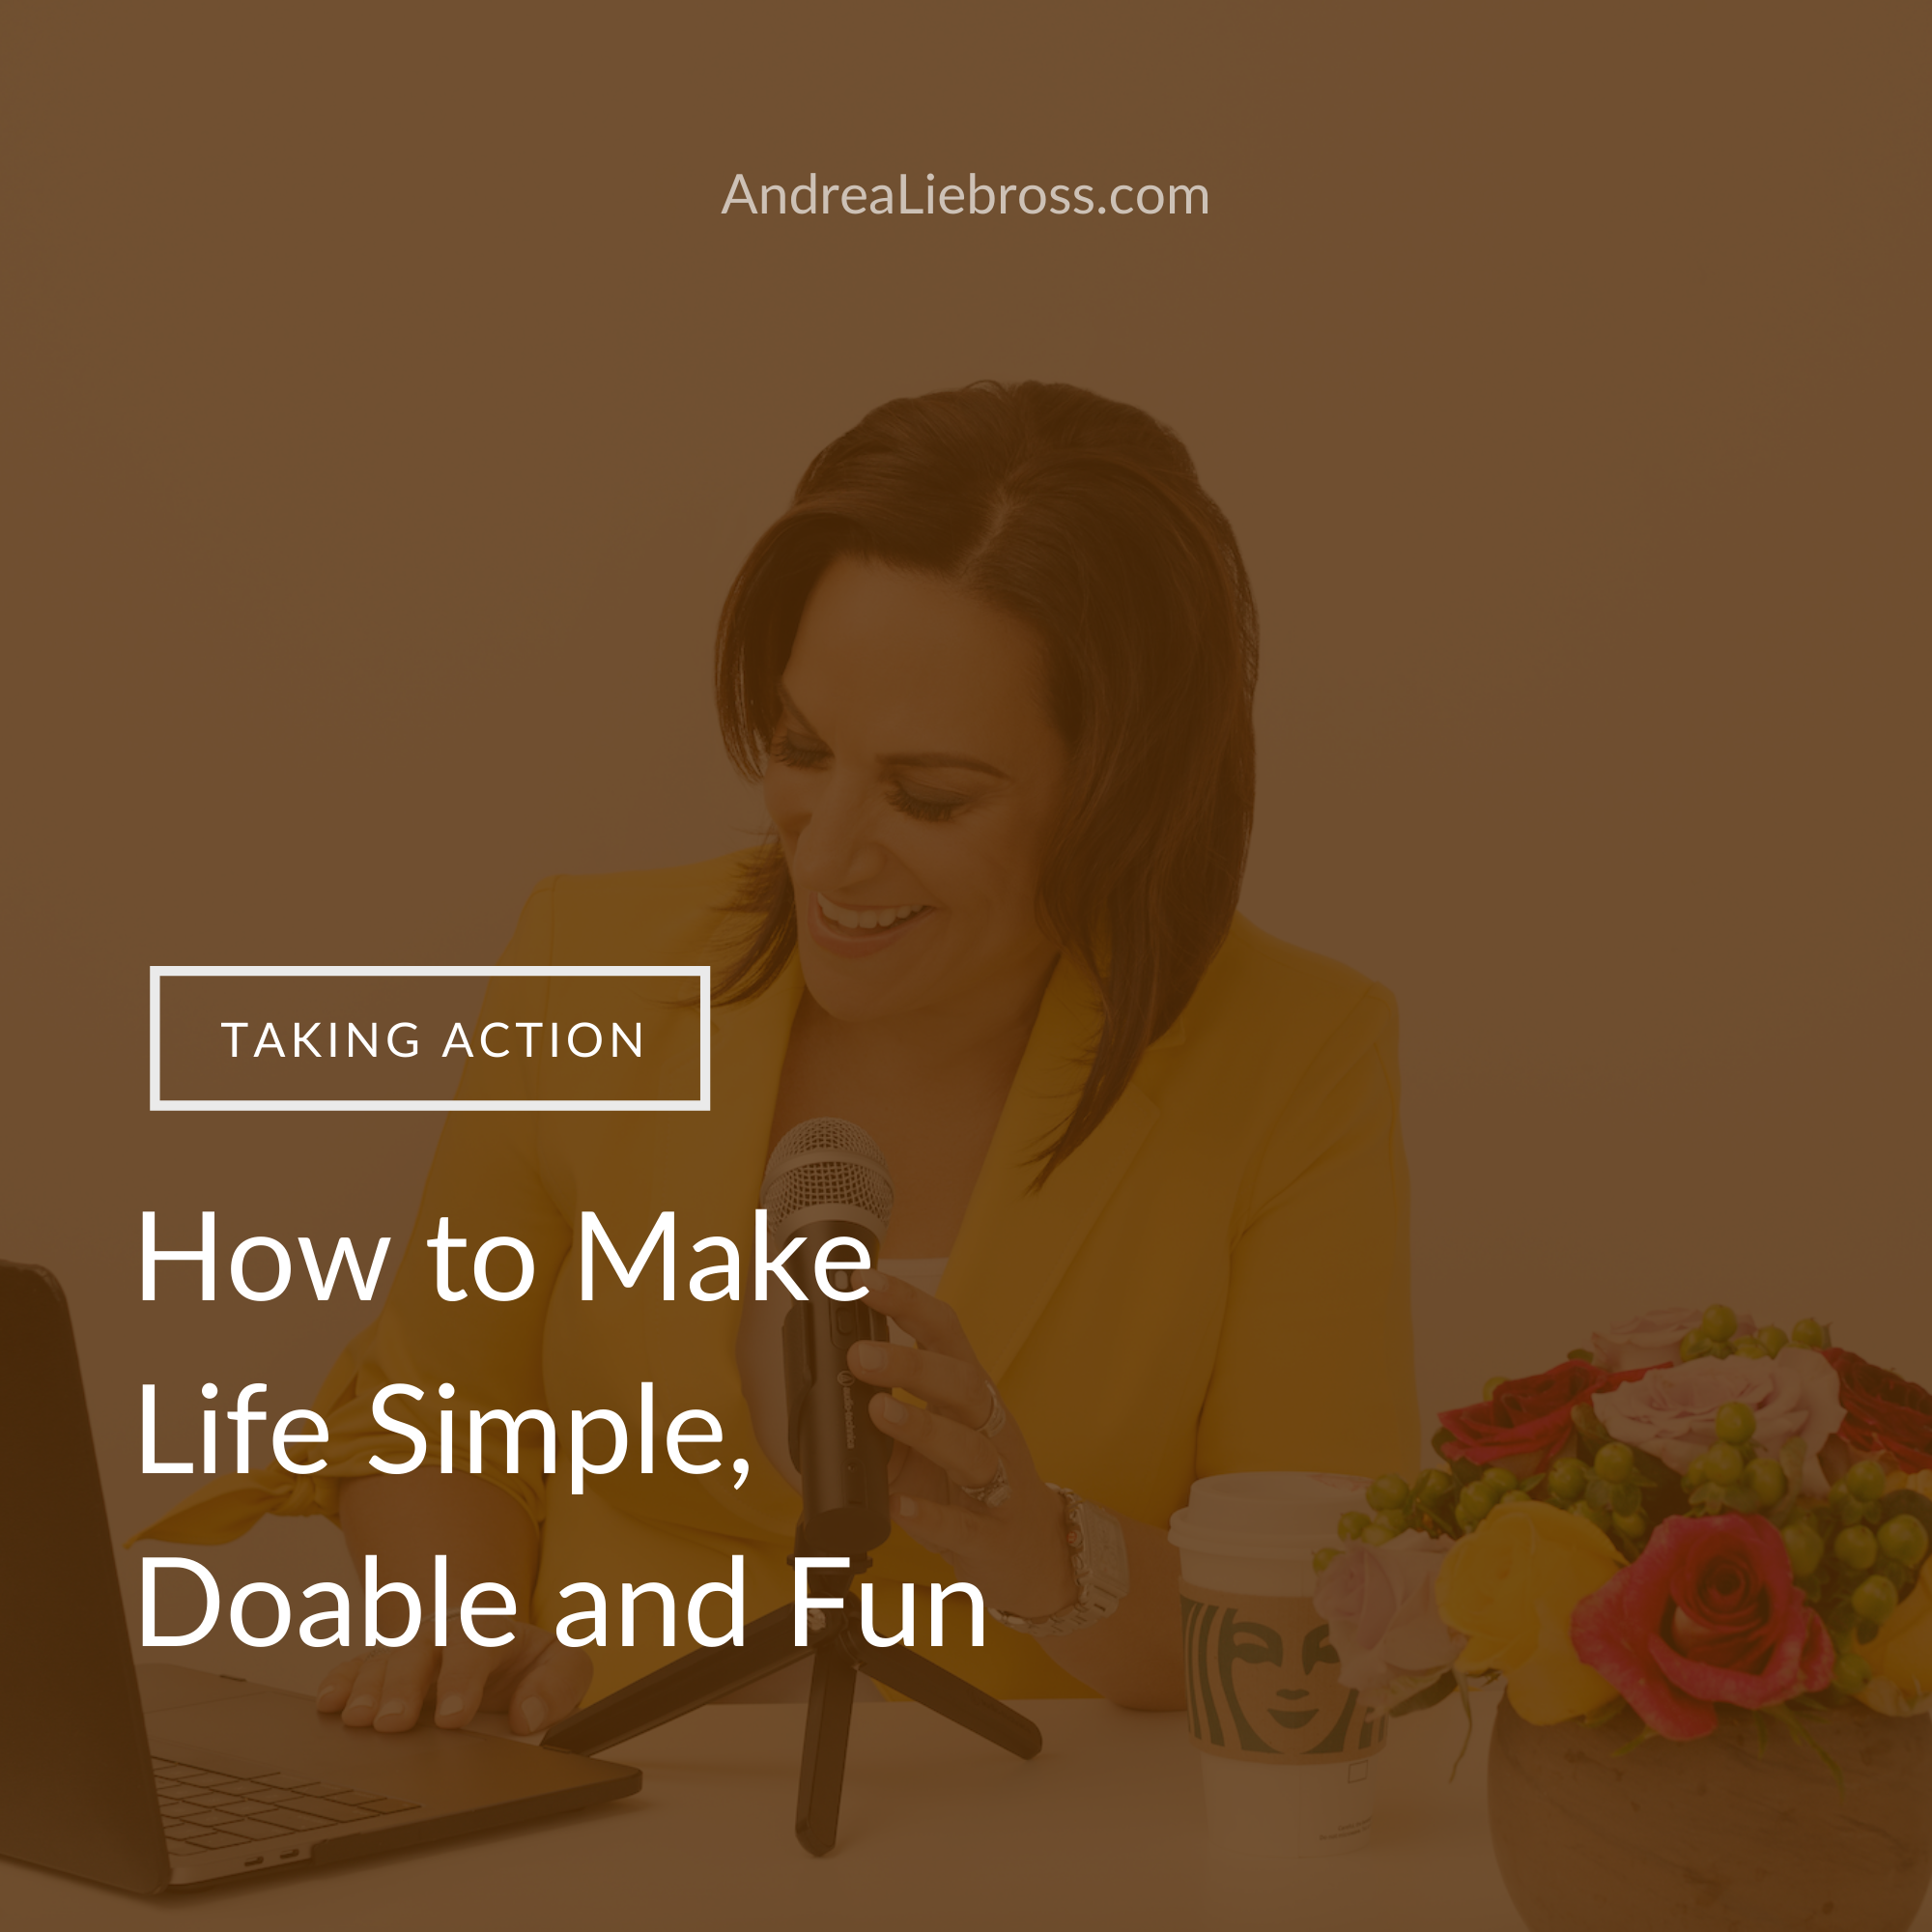 How to Make Life Simple, Doable and Fun